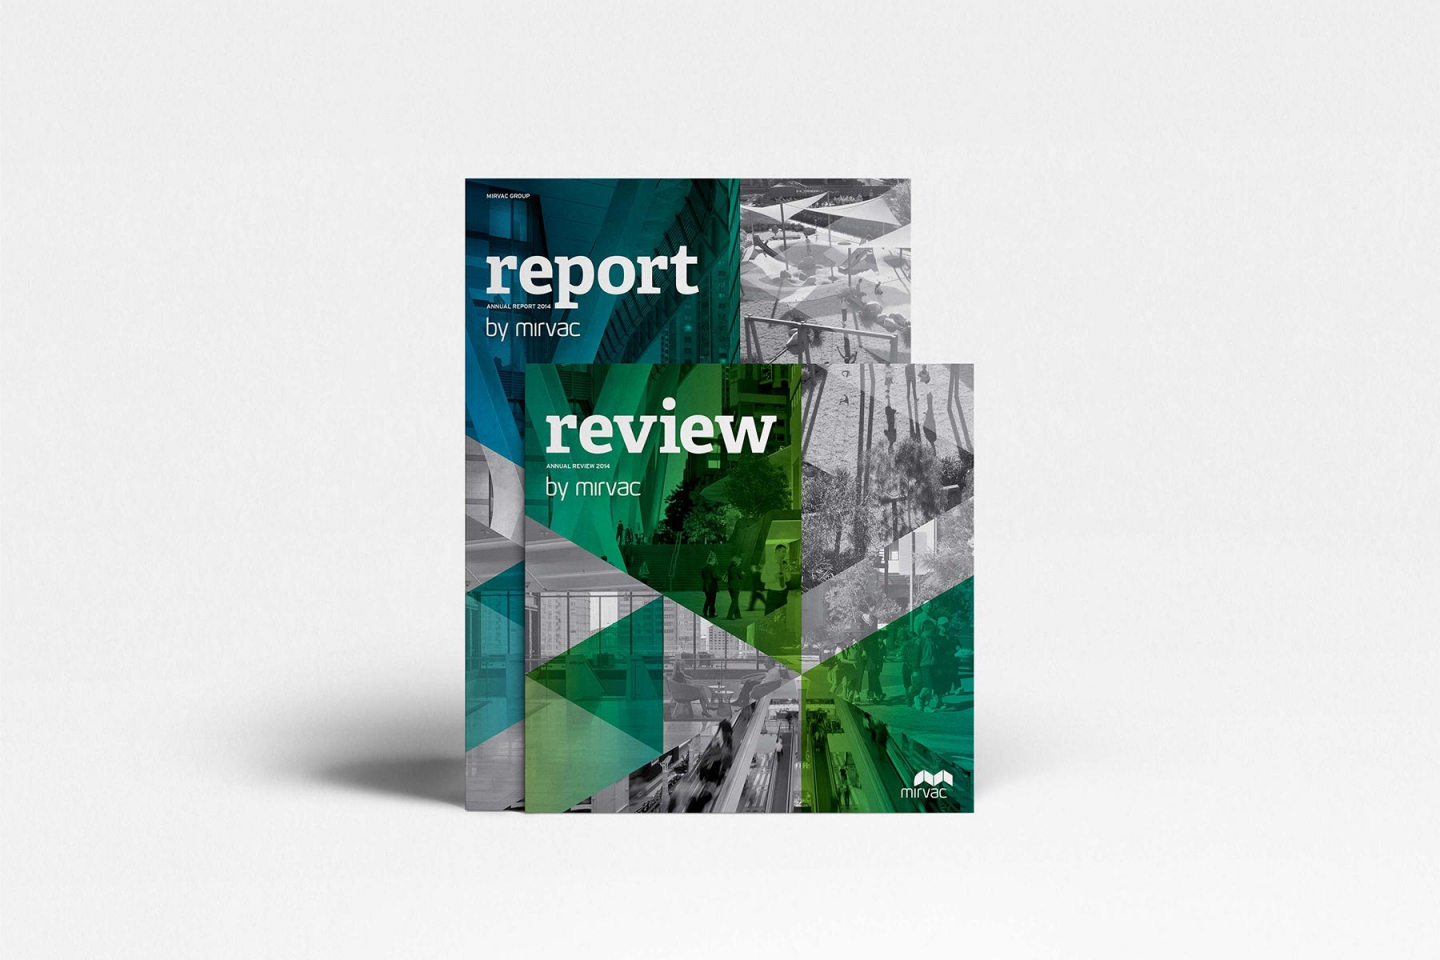 Mirvac: Annual Report + Review 2014